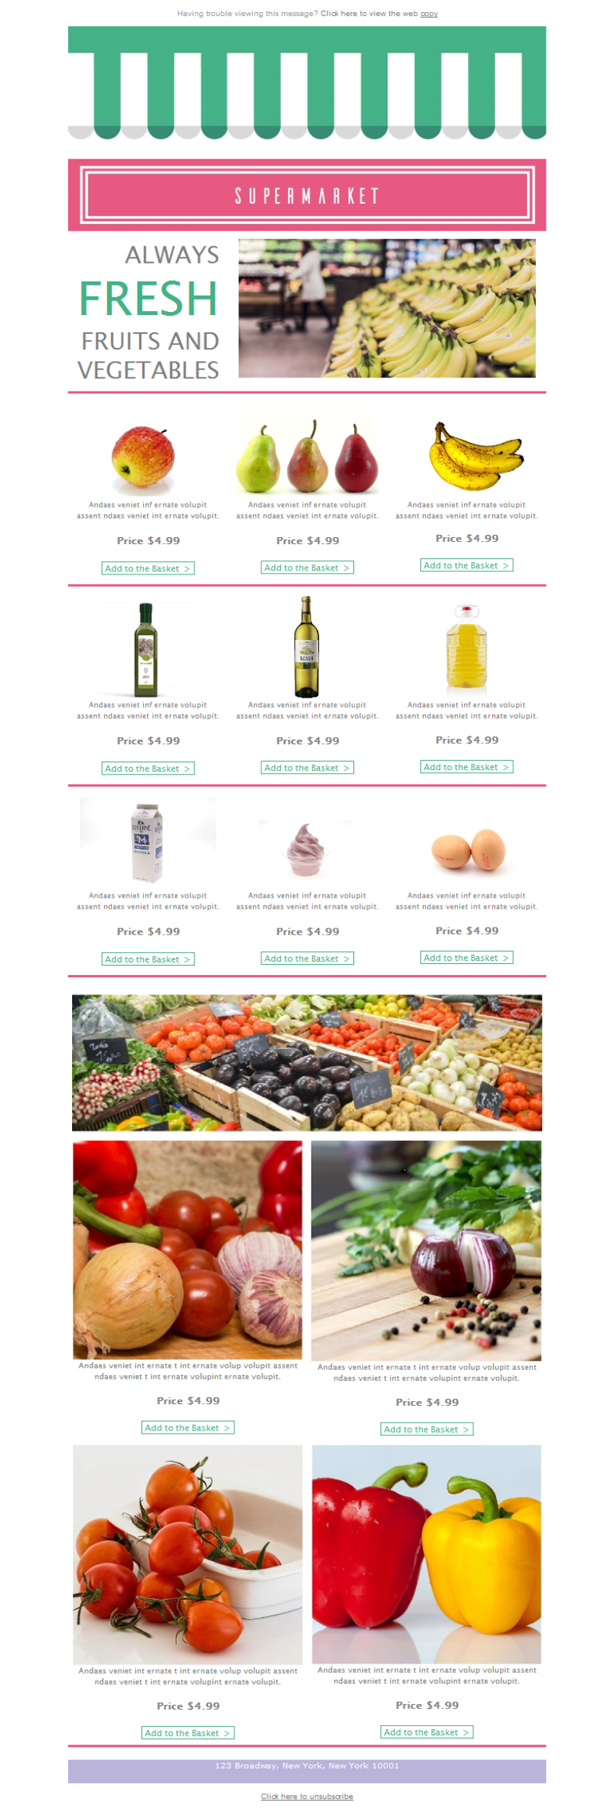 Free newsletter template grocerysupermarketstore – Grocery Templates